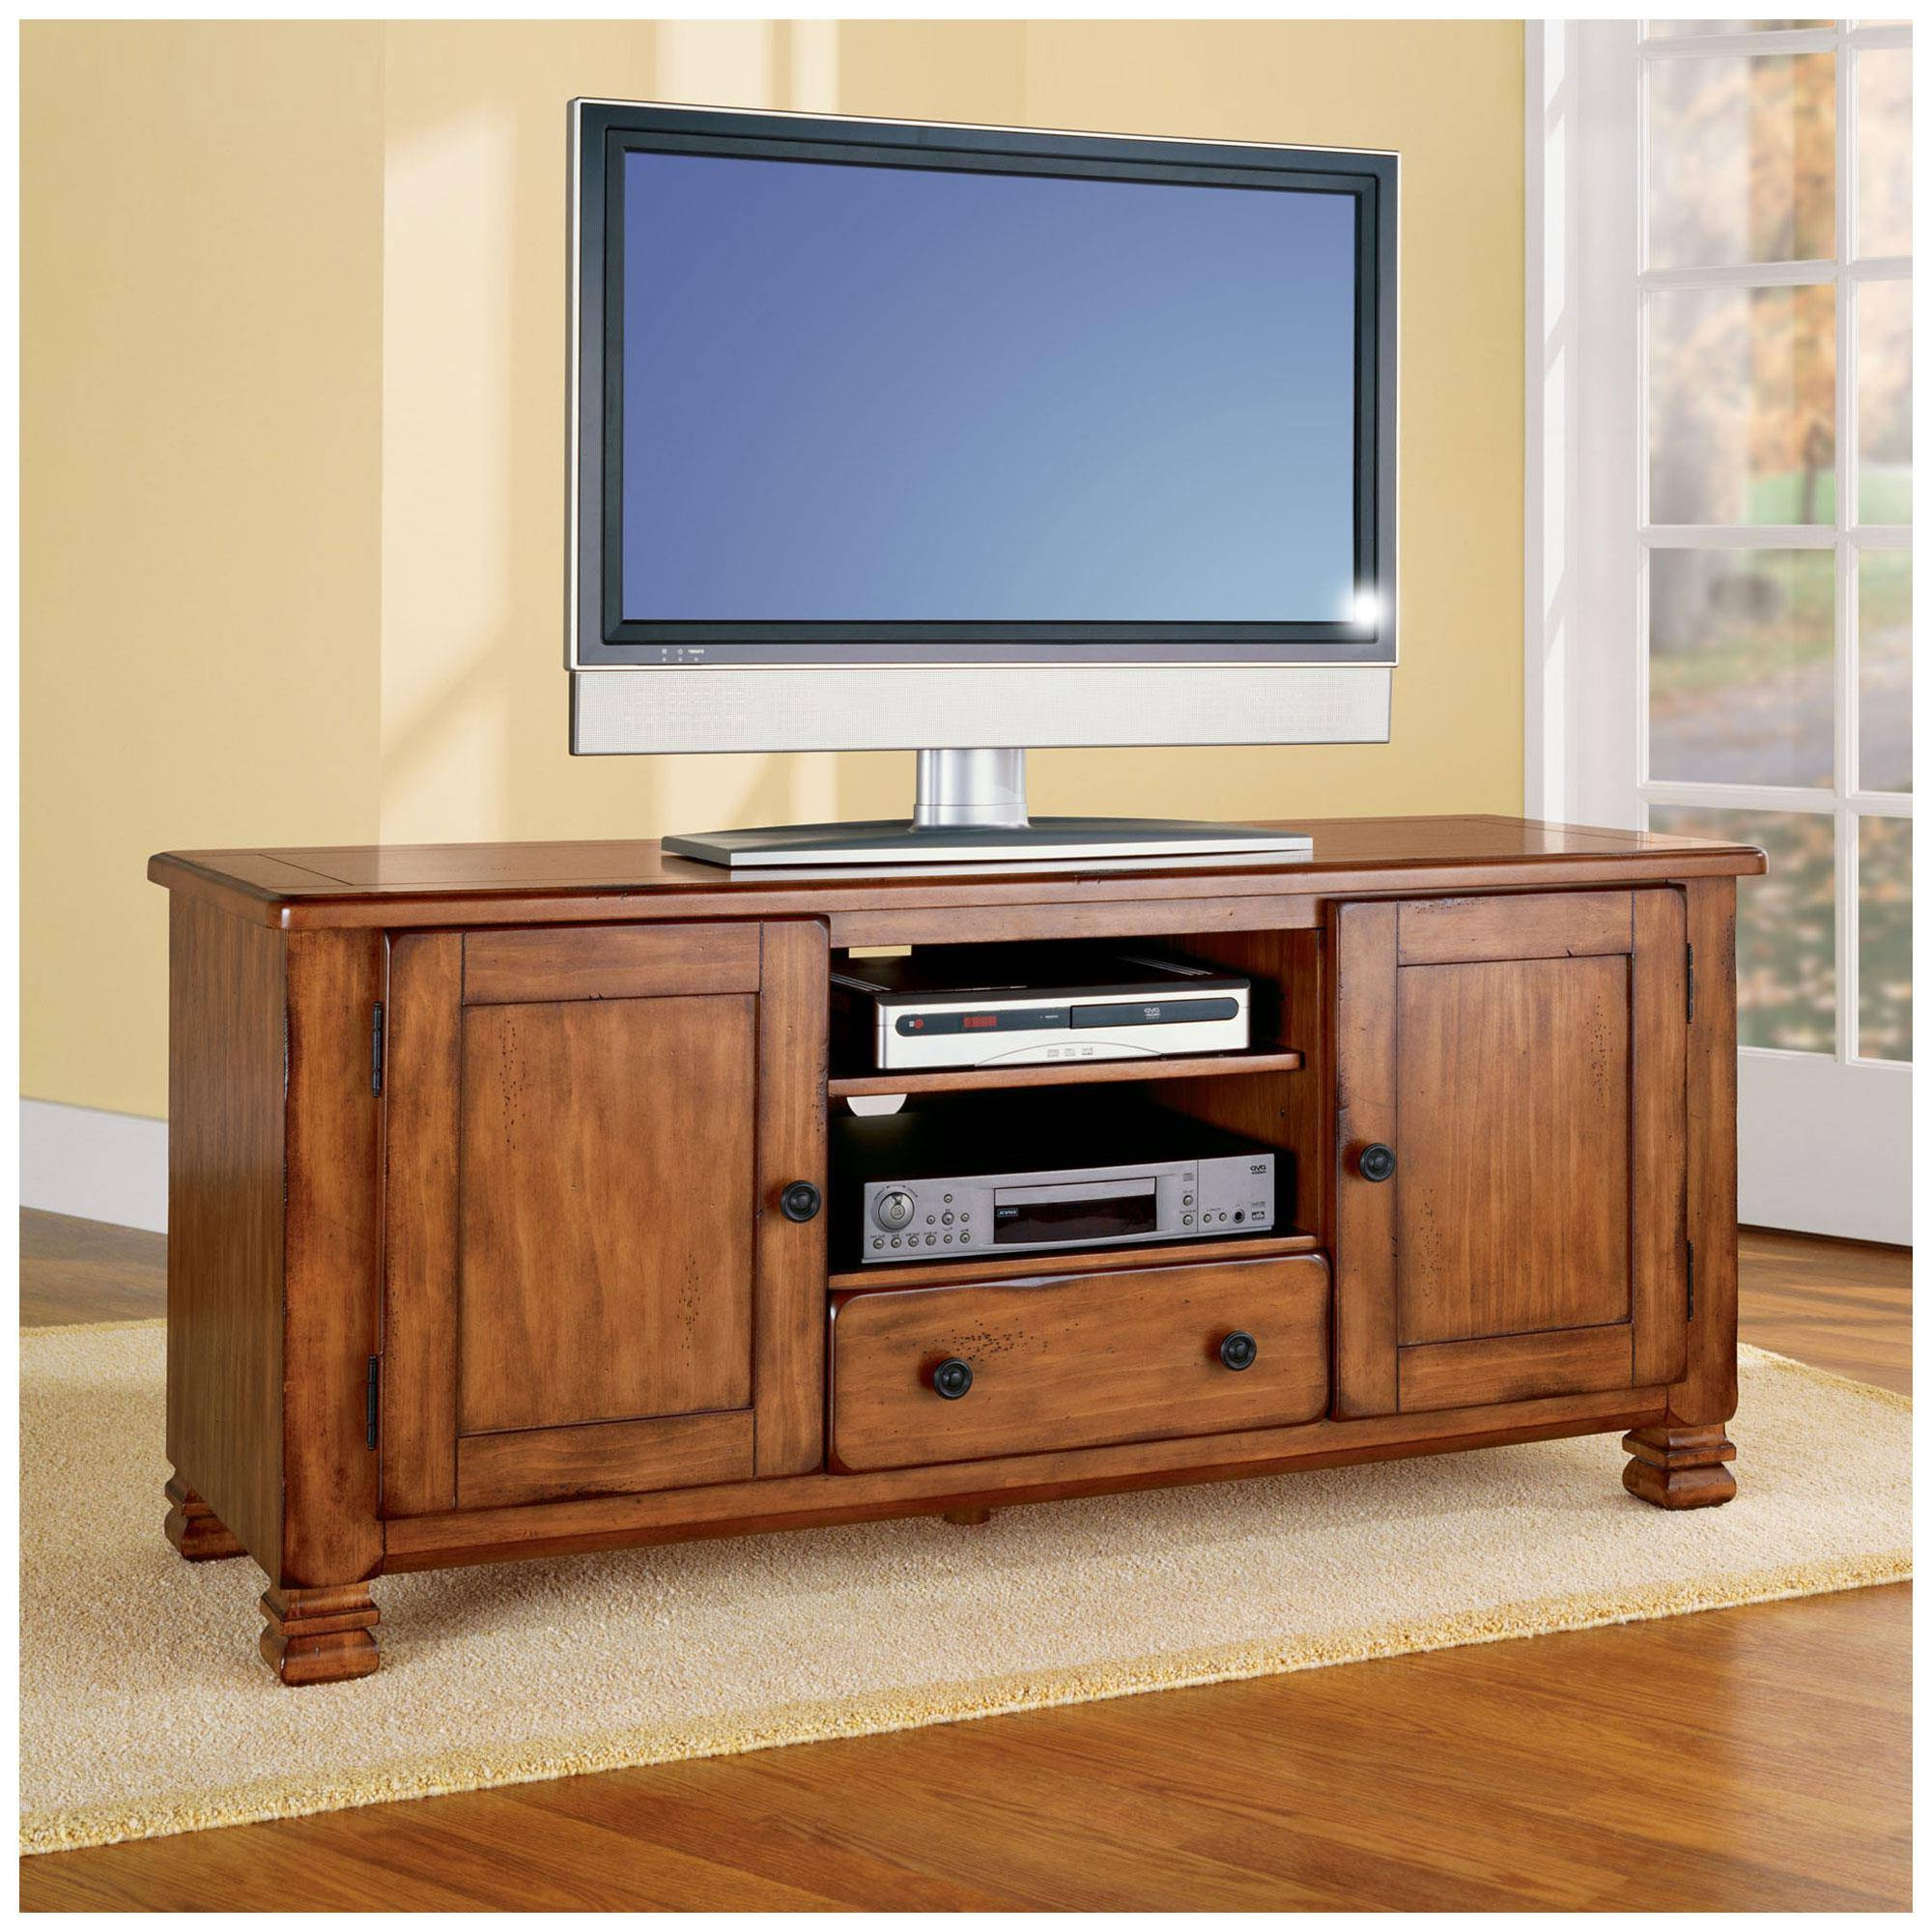 Well Liked Tv Stands For Flat Screens Trendy Innovative Low Tv With Regard To Light Oak Tv Stands Flat Screen (View 20 of 20)